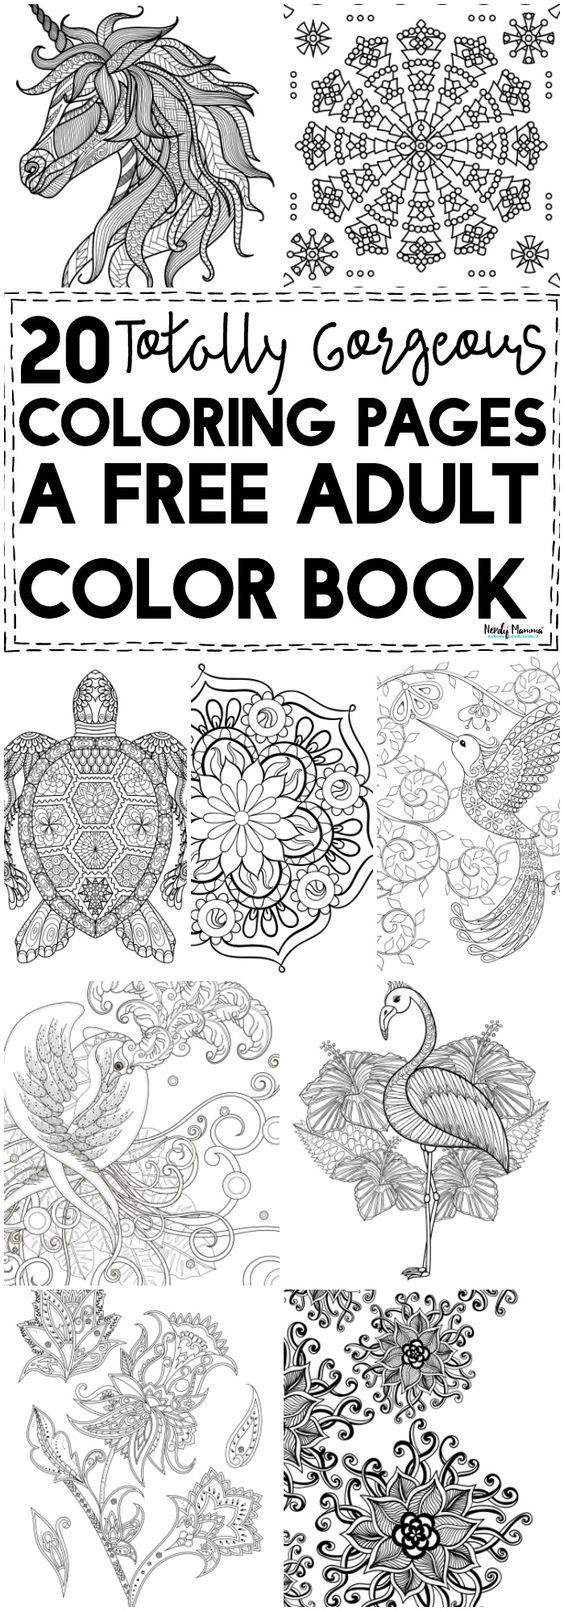 OMG You HAVE To Check Out This Free Adult Color Book Its Got 20 GORGEOUS Coloring Pages